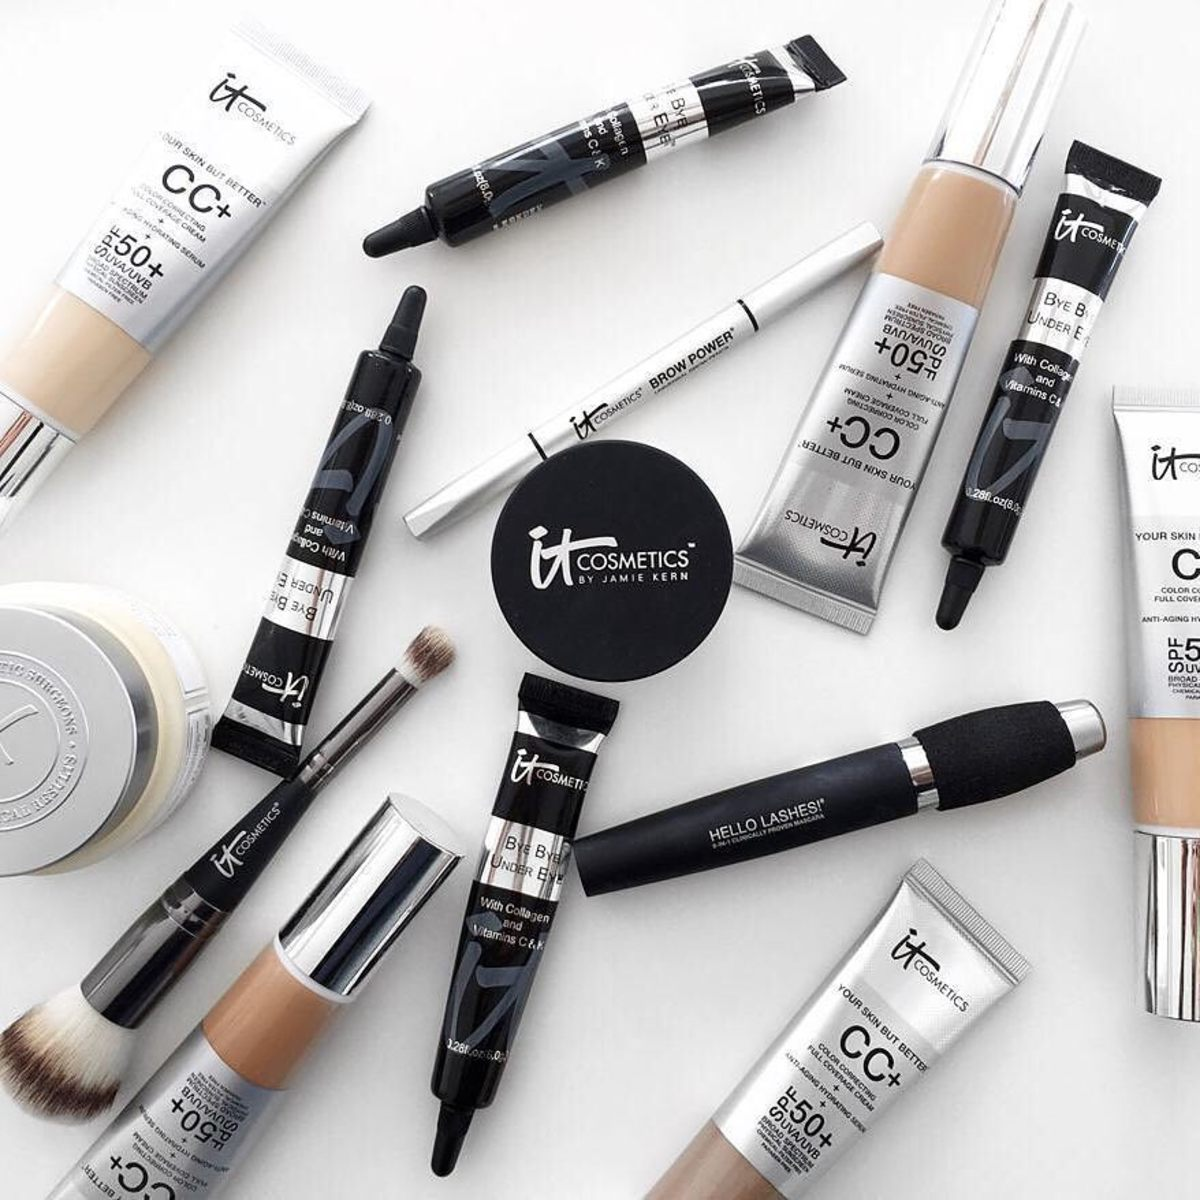 Environmental Friendly And Natural Ingredients of Cosmetics